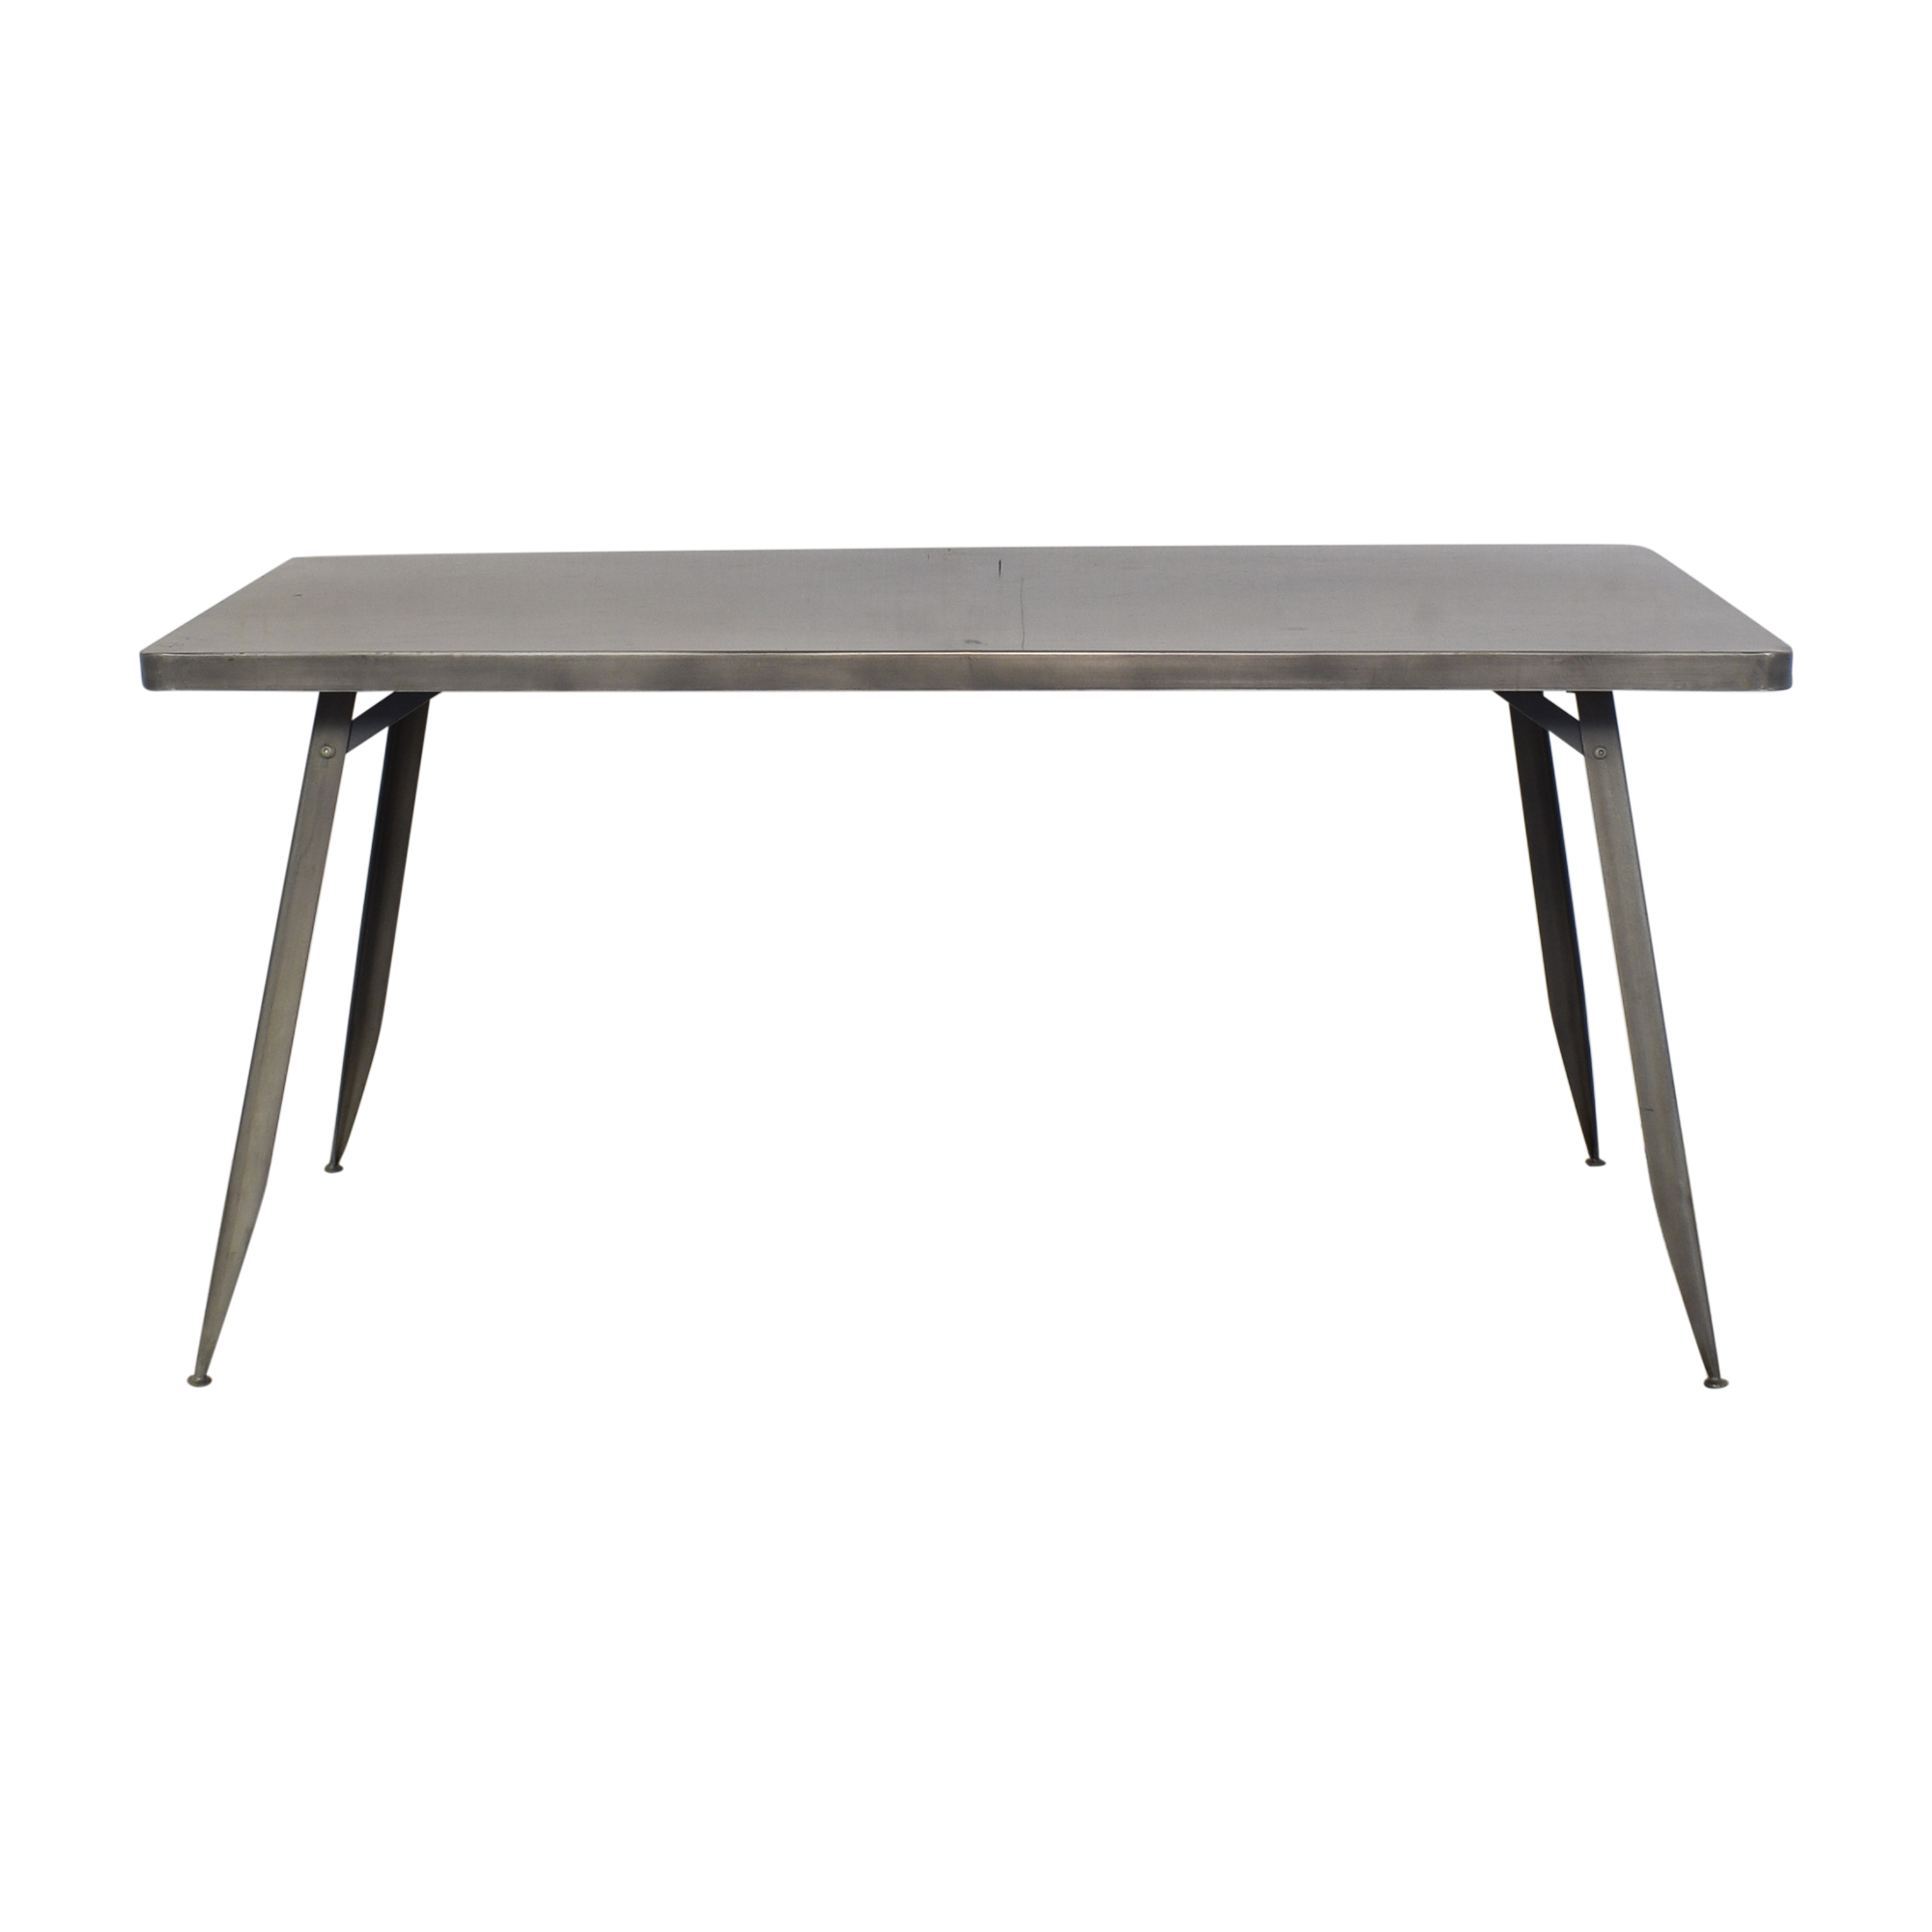 CB2 Draught Dining Table / Dinner Tables